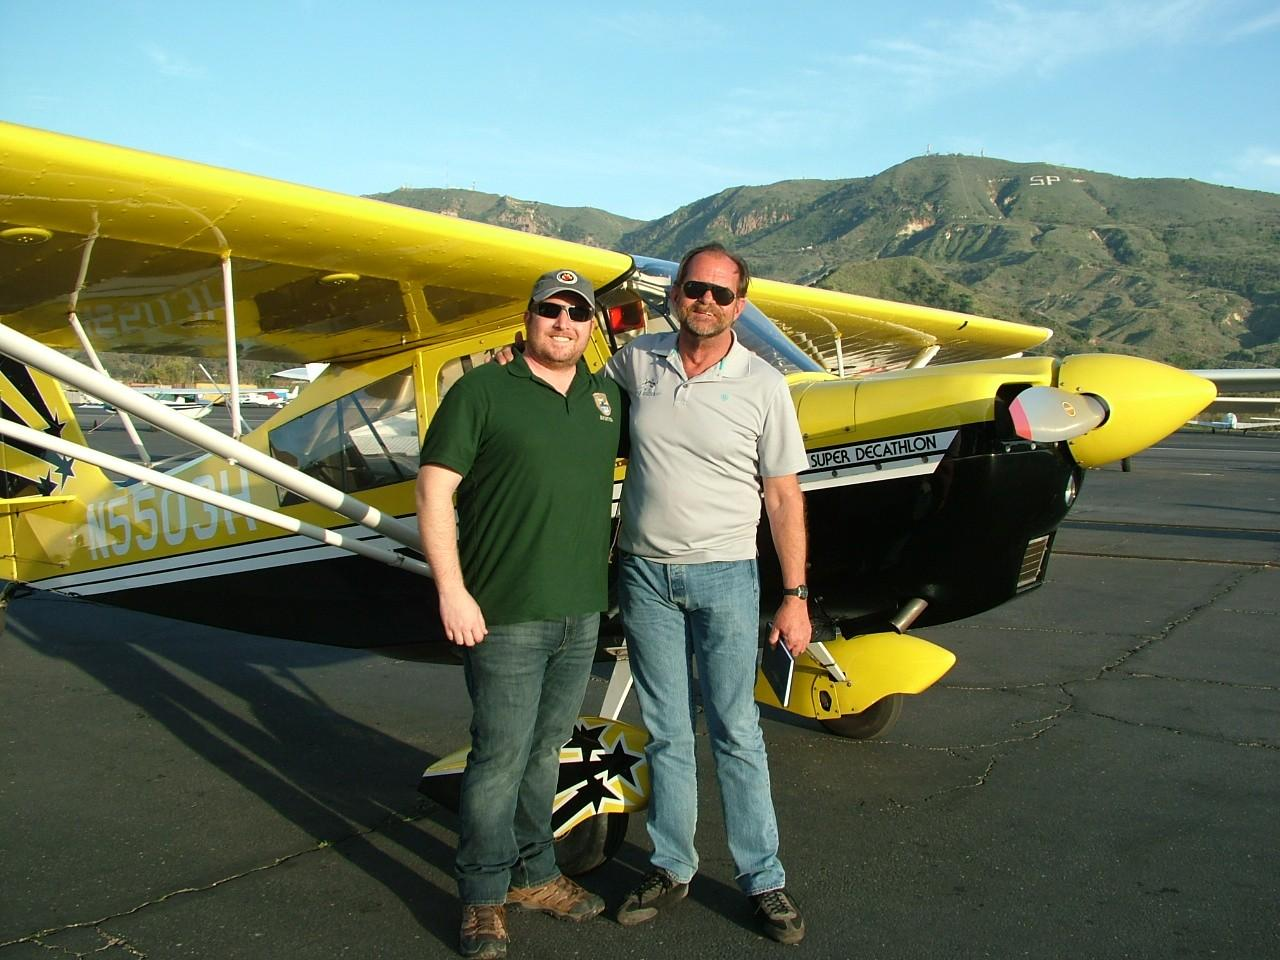 Emergency Maneuver Training & Tailwheel Endorsement - Christopher Greeley